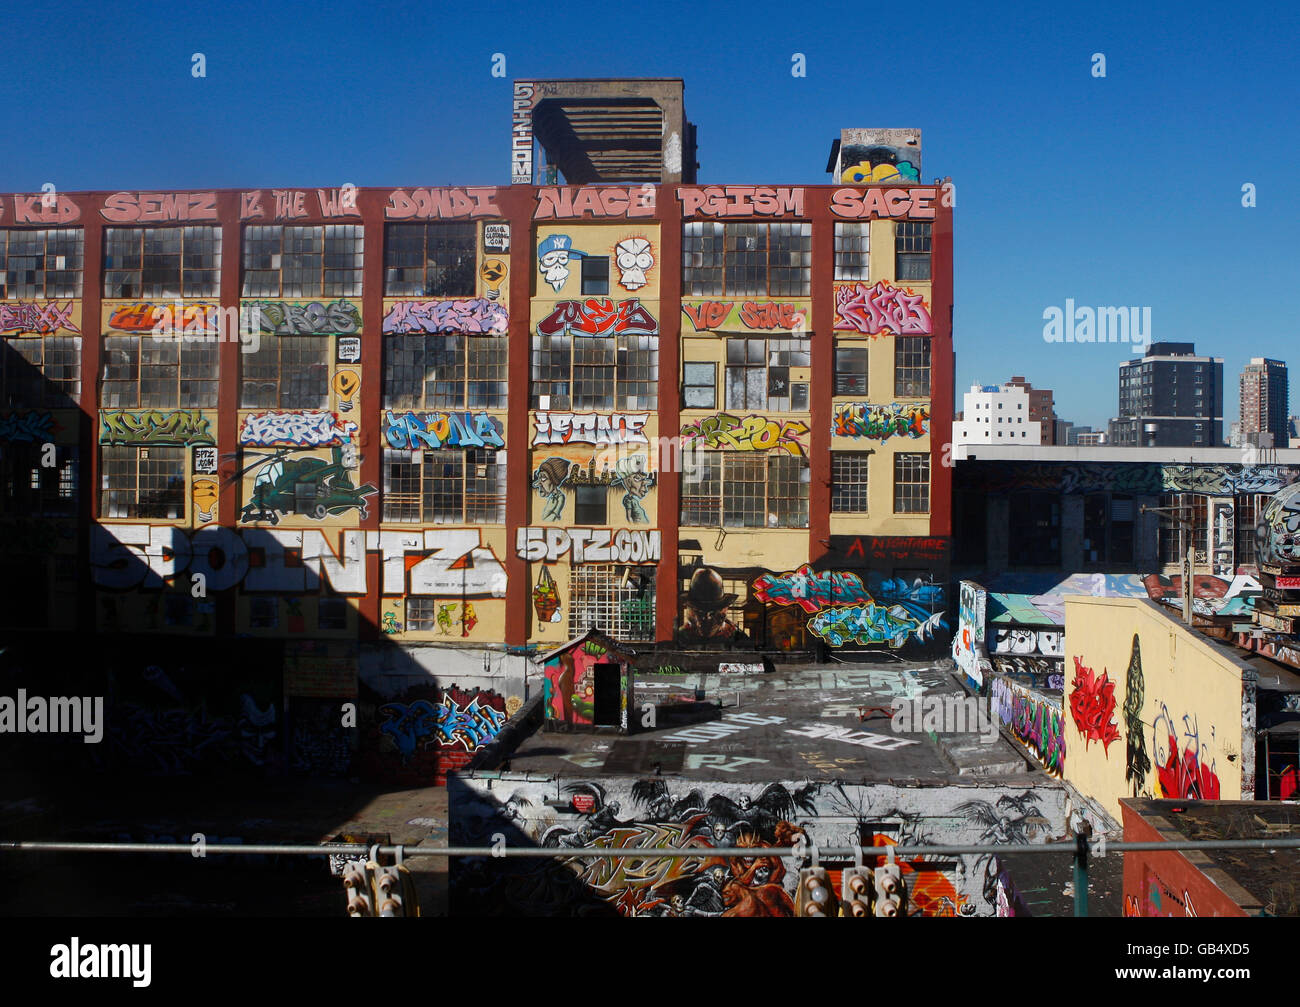 Buildings covered in graffiti, New York City, New York, USA, America - Stock Image